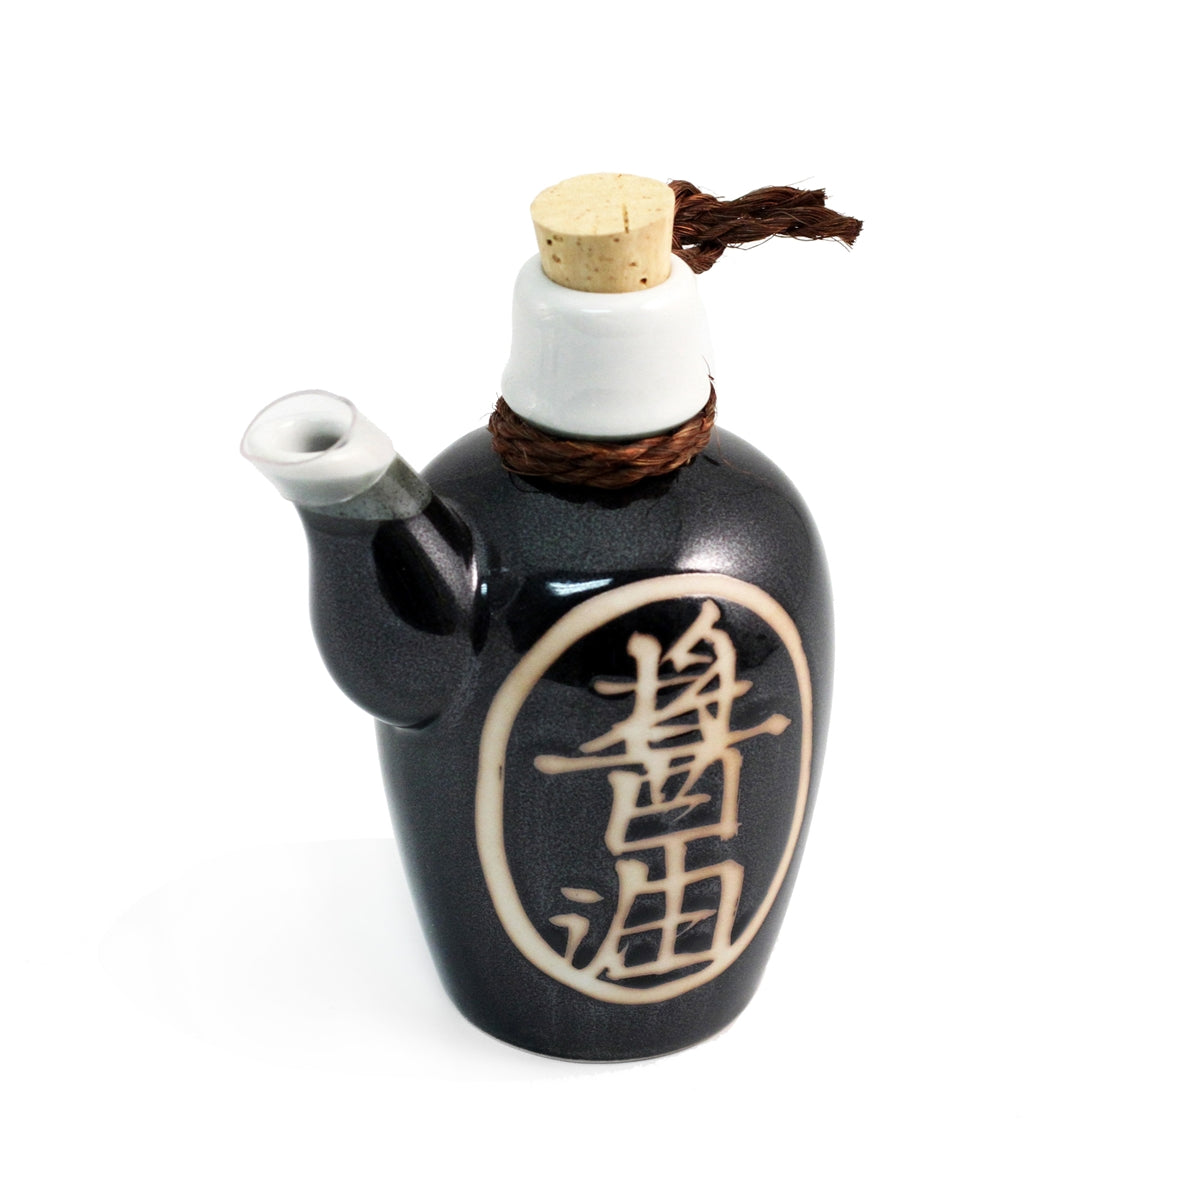 Black Kanji Soy Sauce Dispenser 7 fl oz